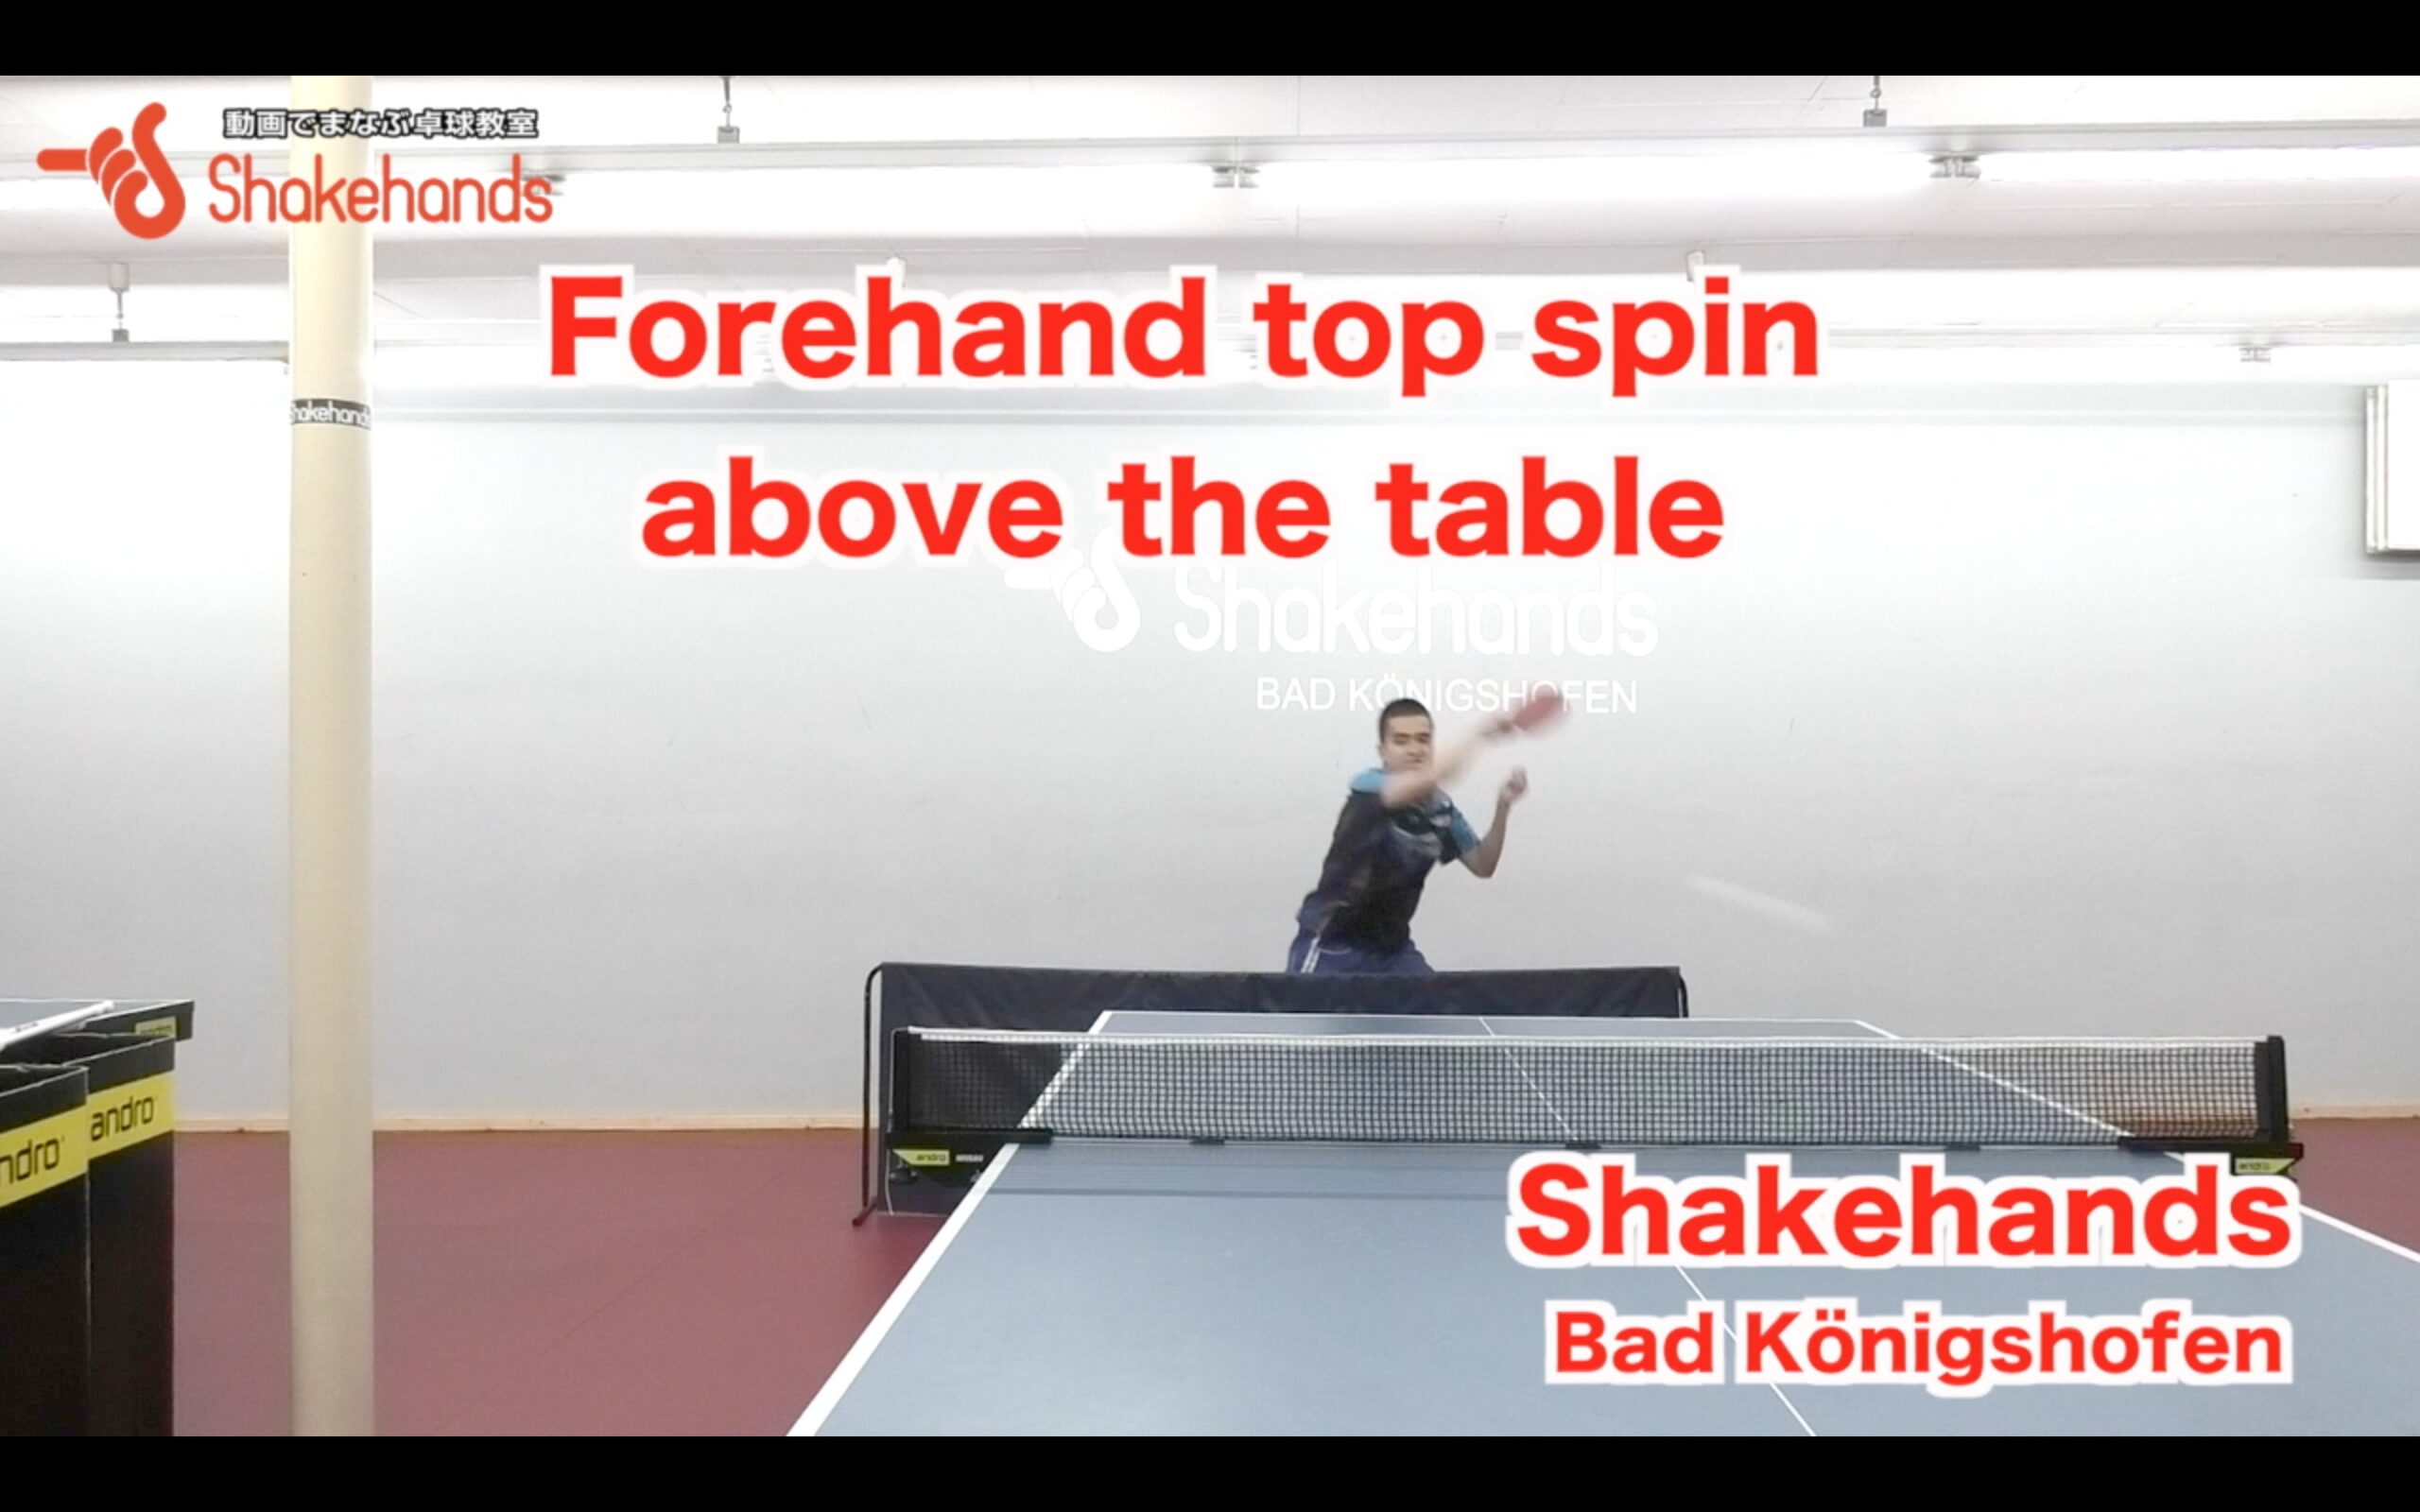 Forehand top spin above the table